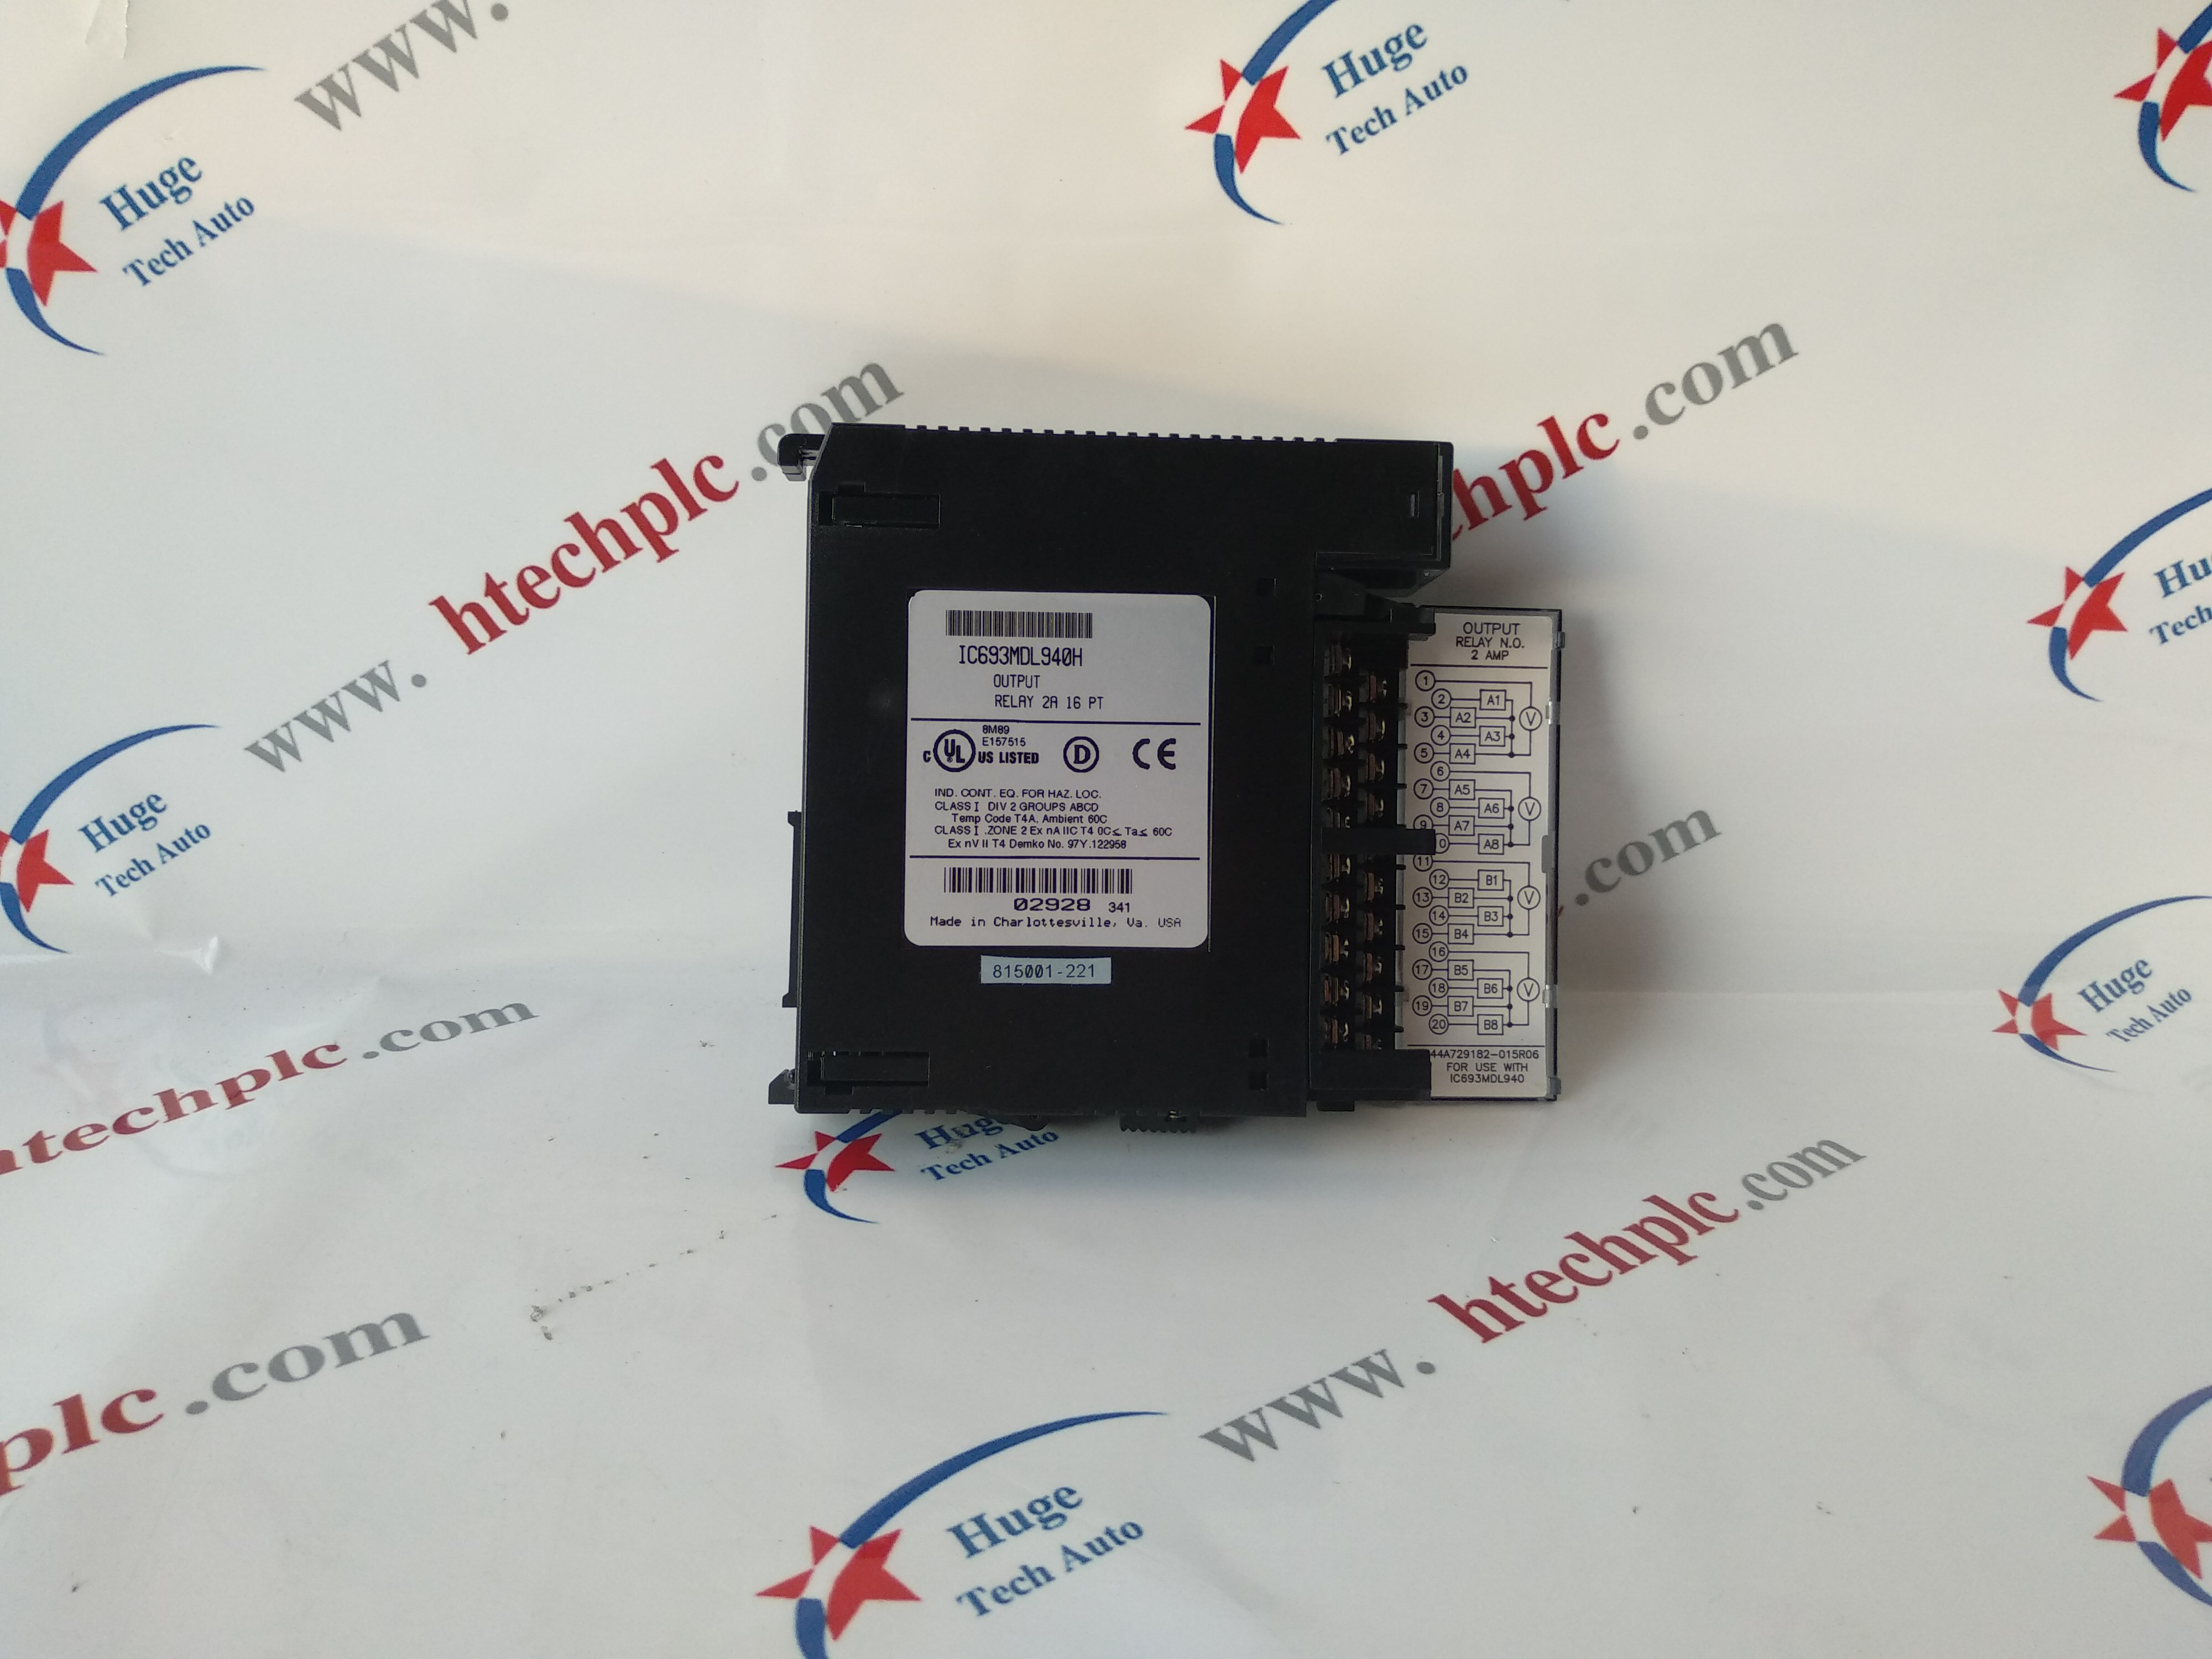 GE 531X139APMANG2 brand new PLC DCS TSI system spare parts in stock